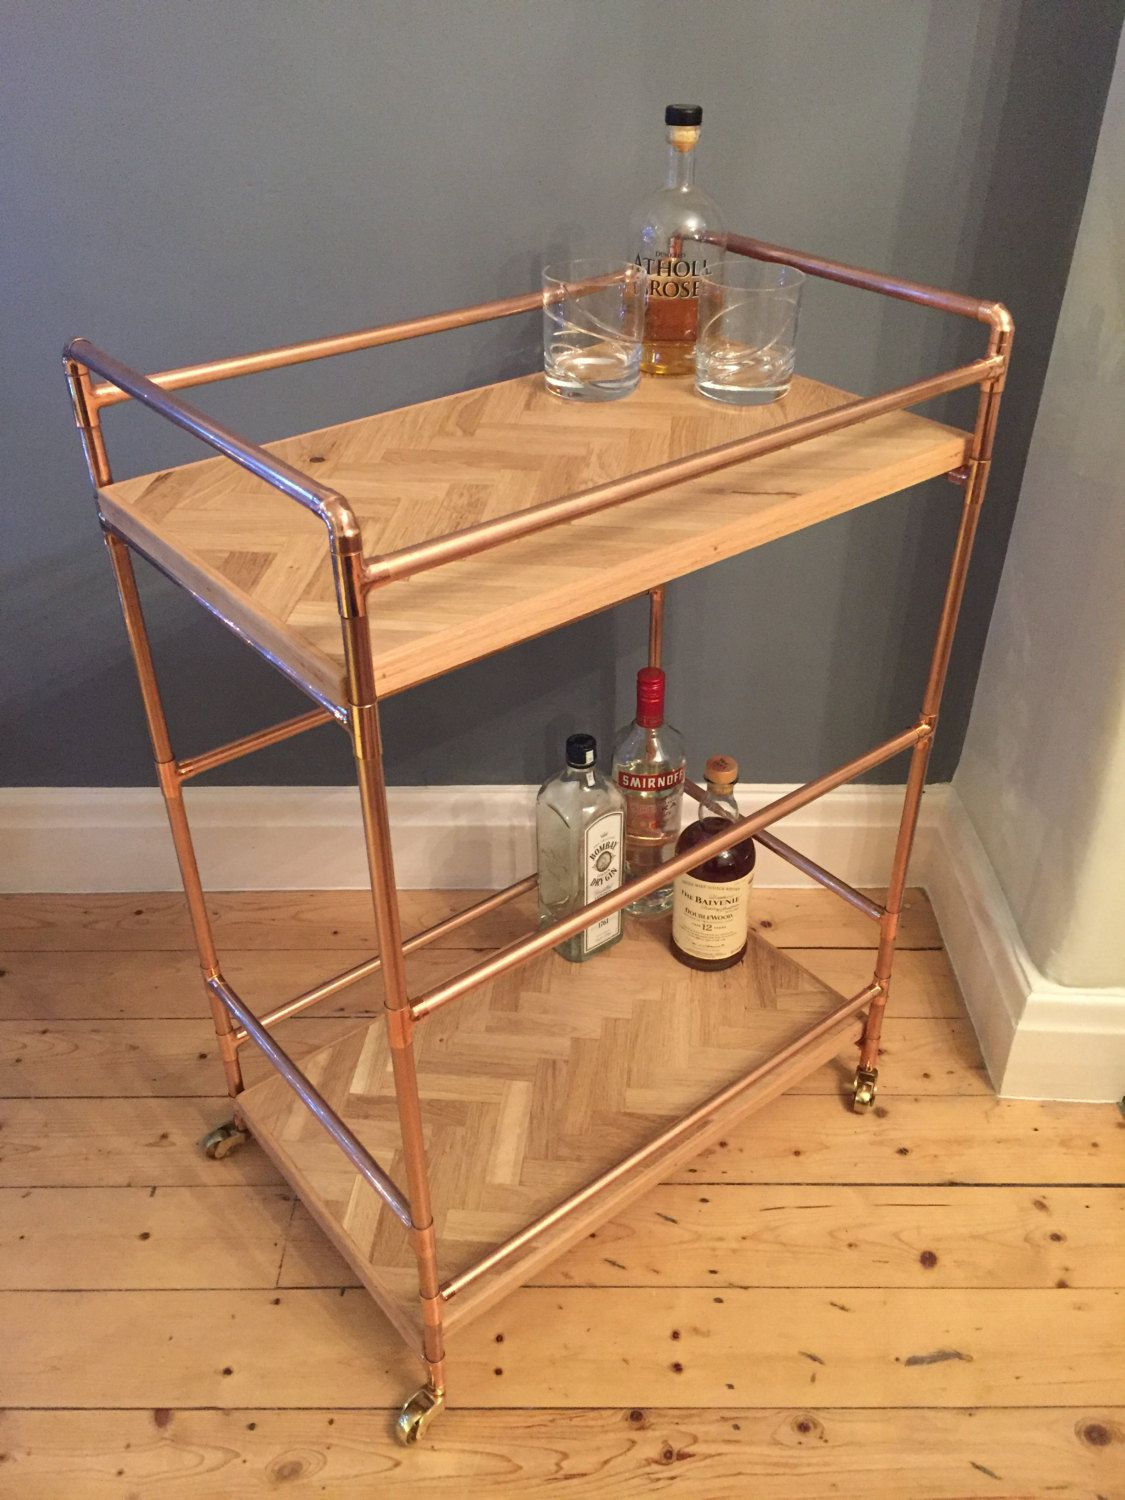 2 Tier Drinks Trolley In A Retro Industrial Style With A